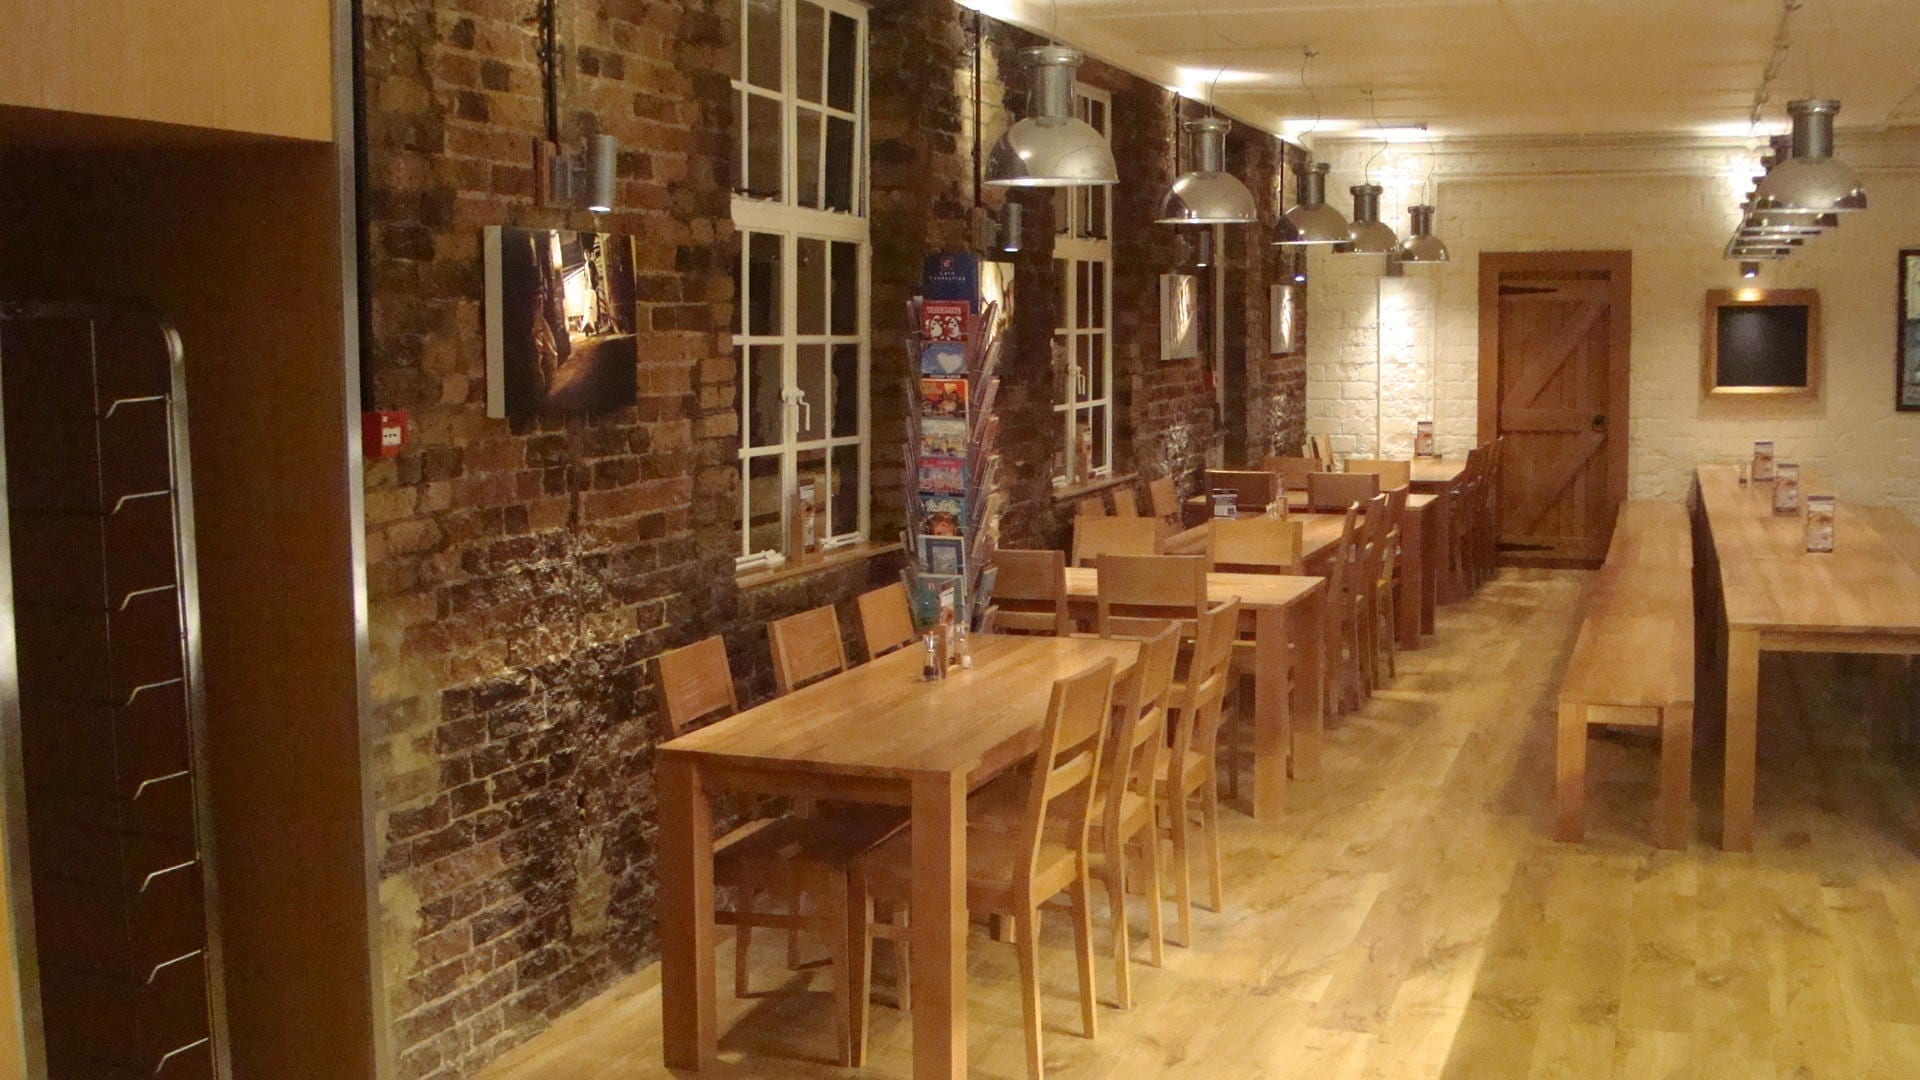 Fullers_Chiswick_Servery_Front_of_house_Servery_Food_Display_spacecatering_4